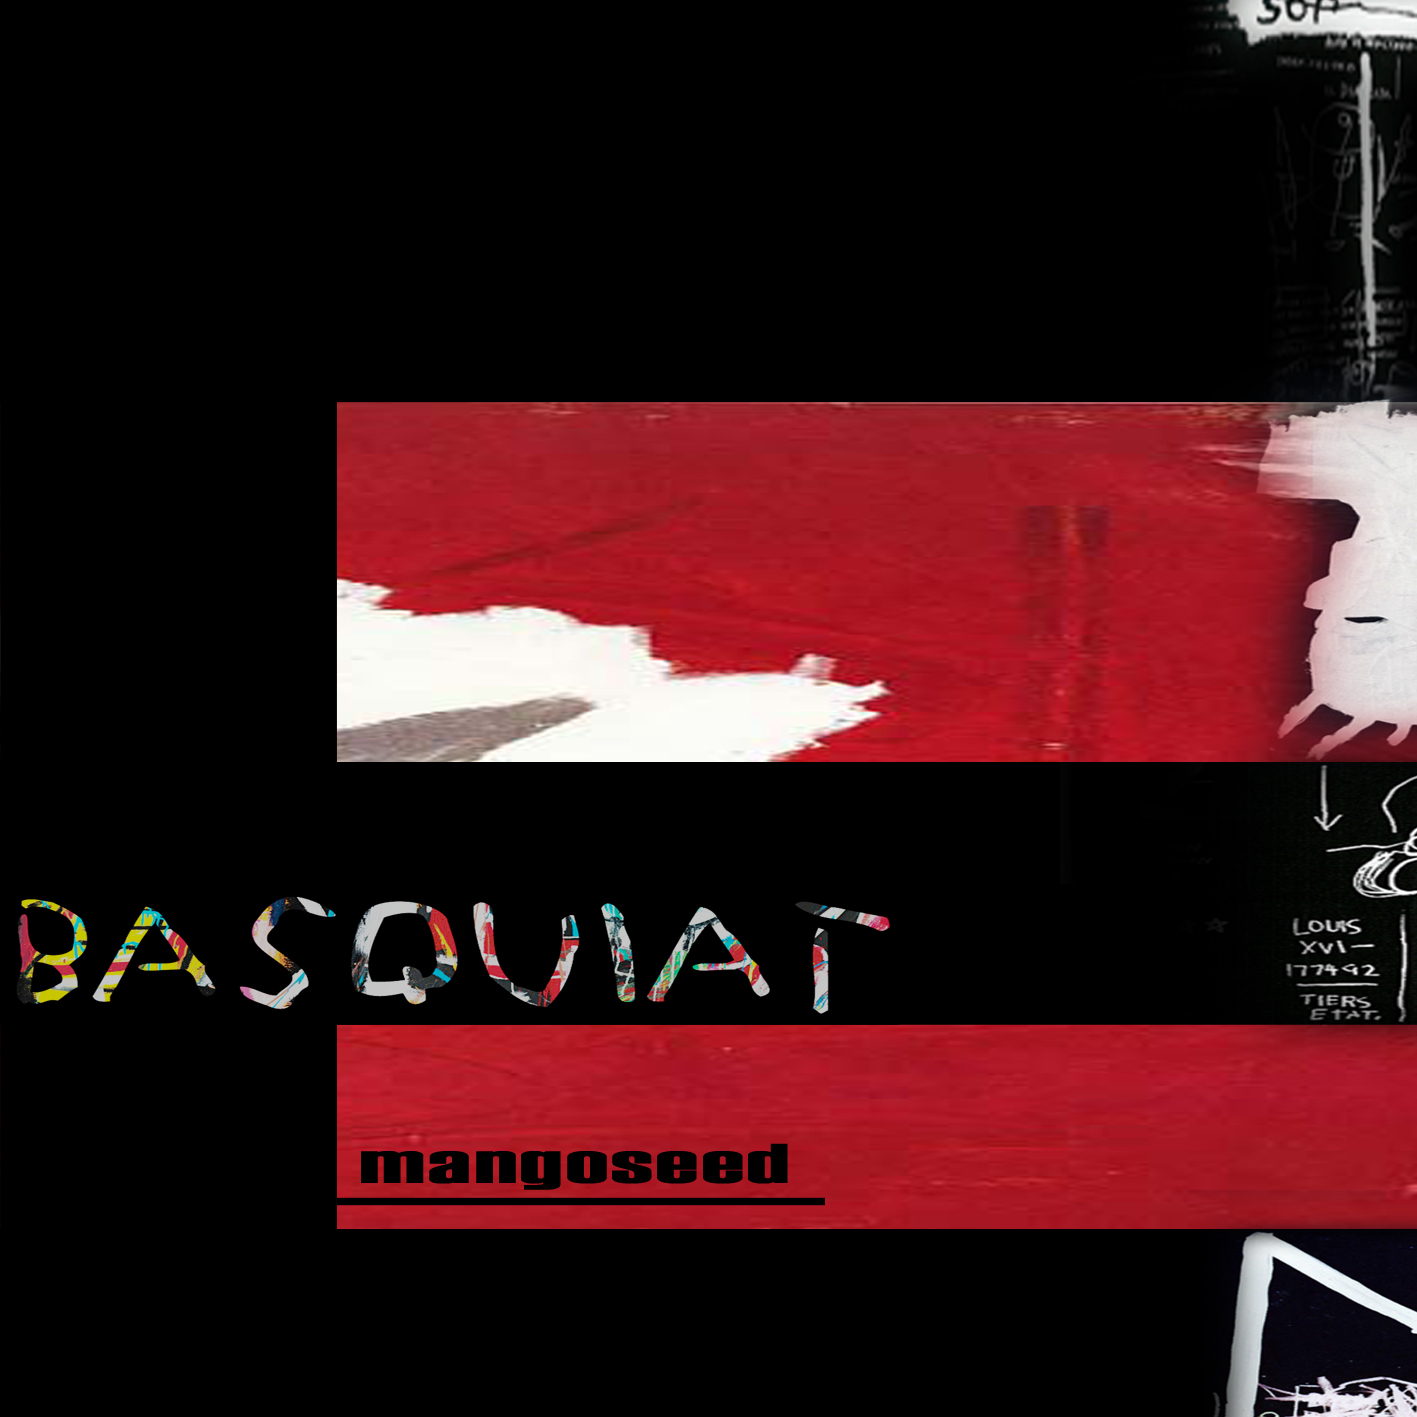 Mangoseed's Basquiat Album Review